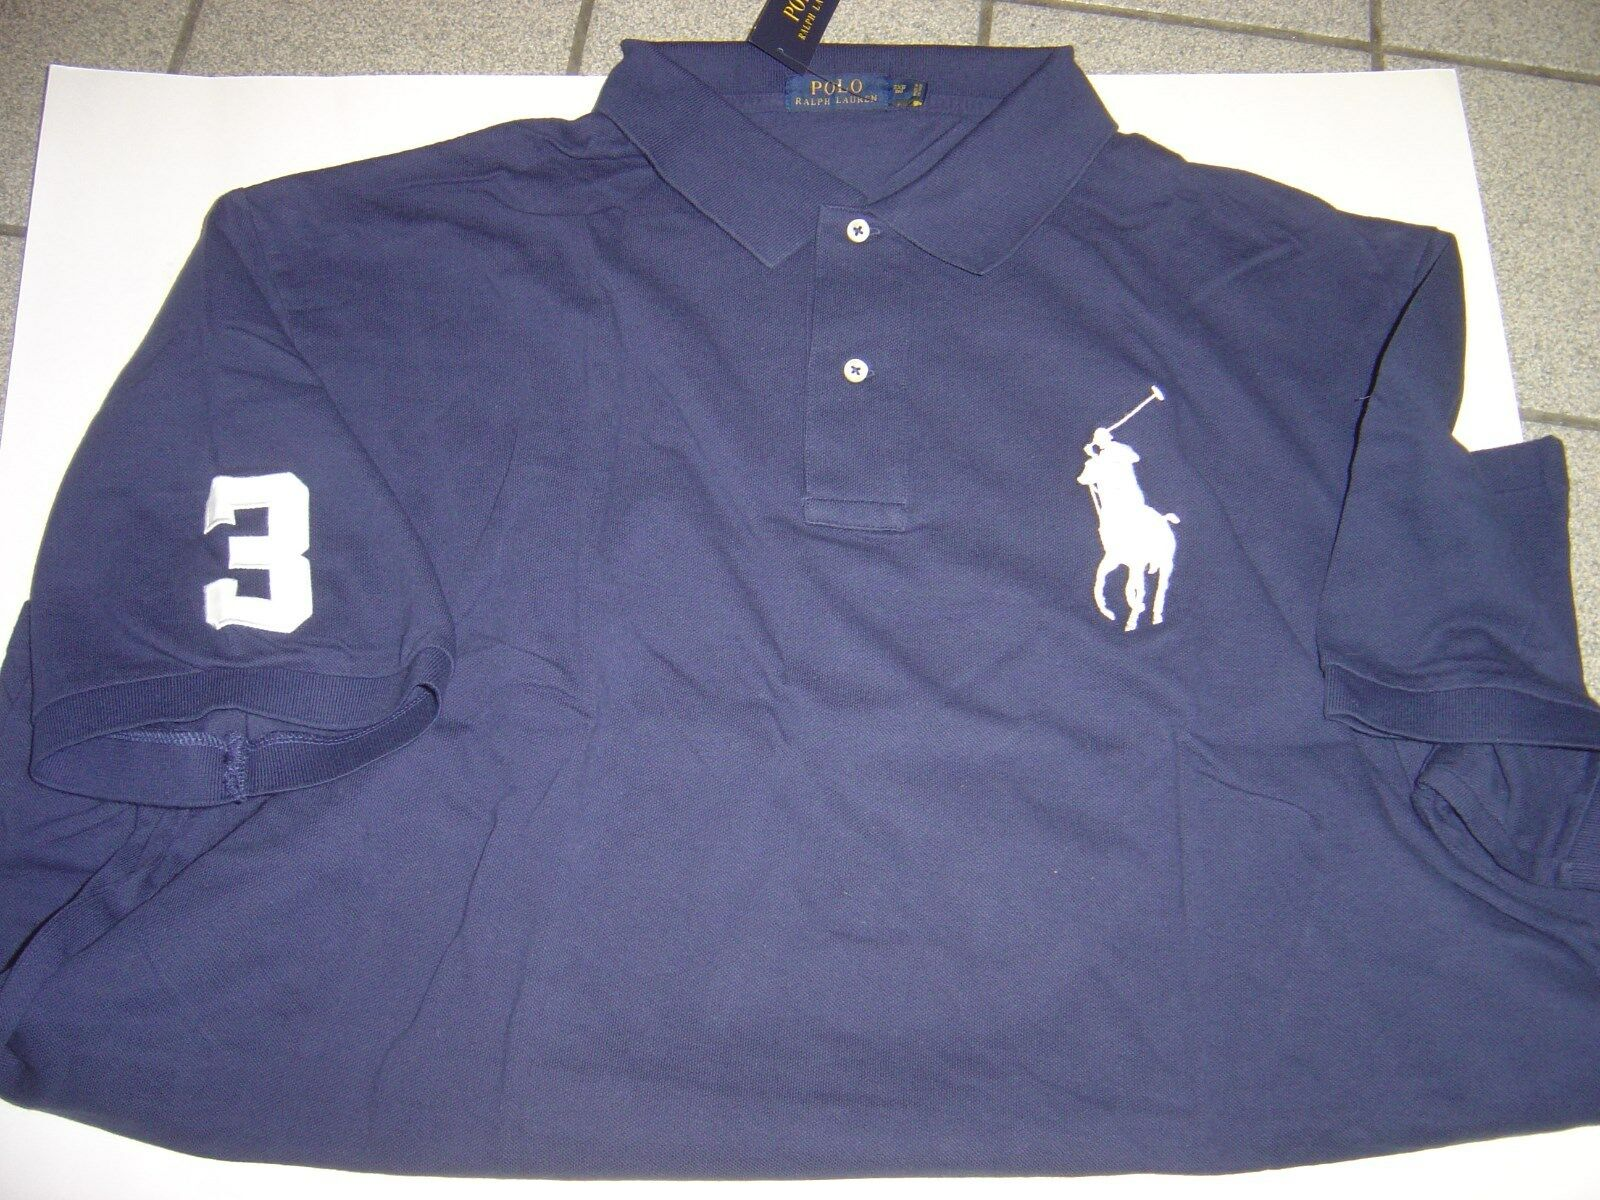 BIG RALPH LAUREN NAVY WITH WHITE LG PONY S S MESH POLO SHIRT SIZE 2XLT